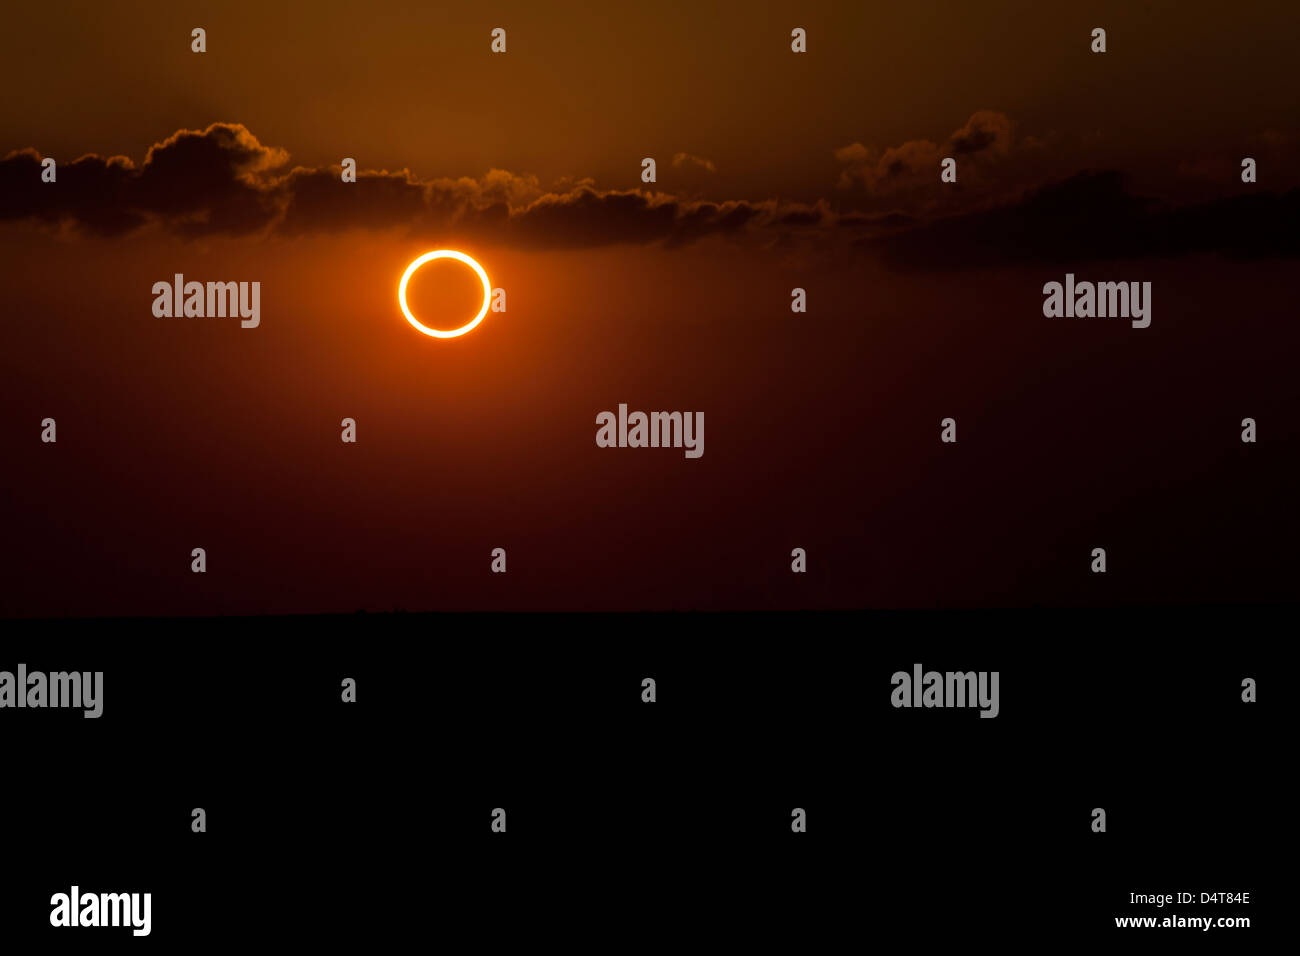 Totality during annular solar eclipse with ring of fire. - Stock Image